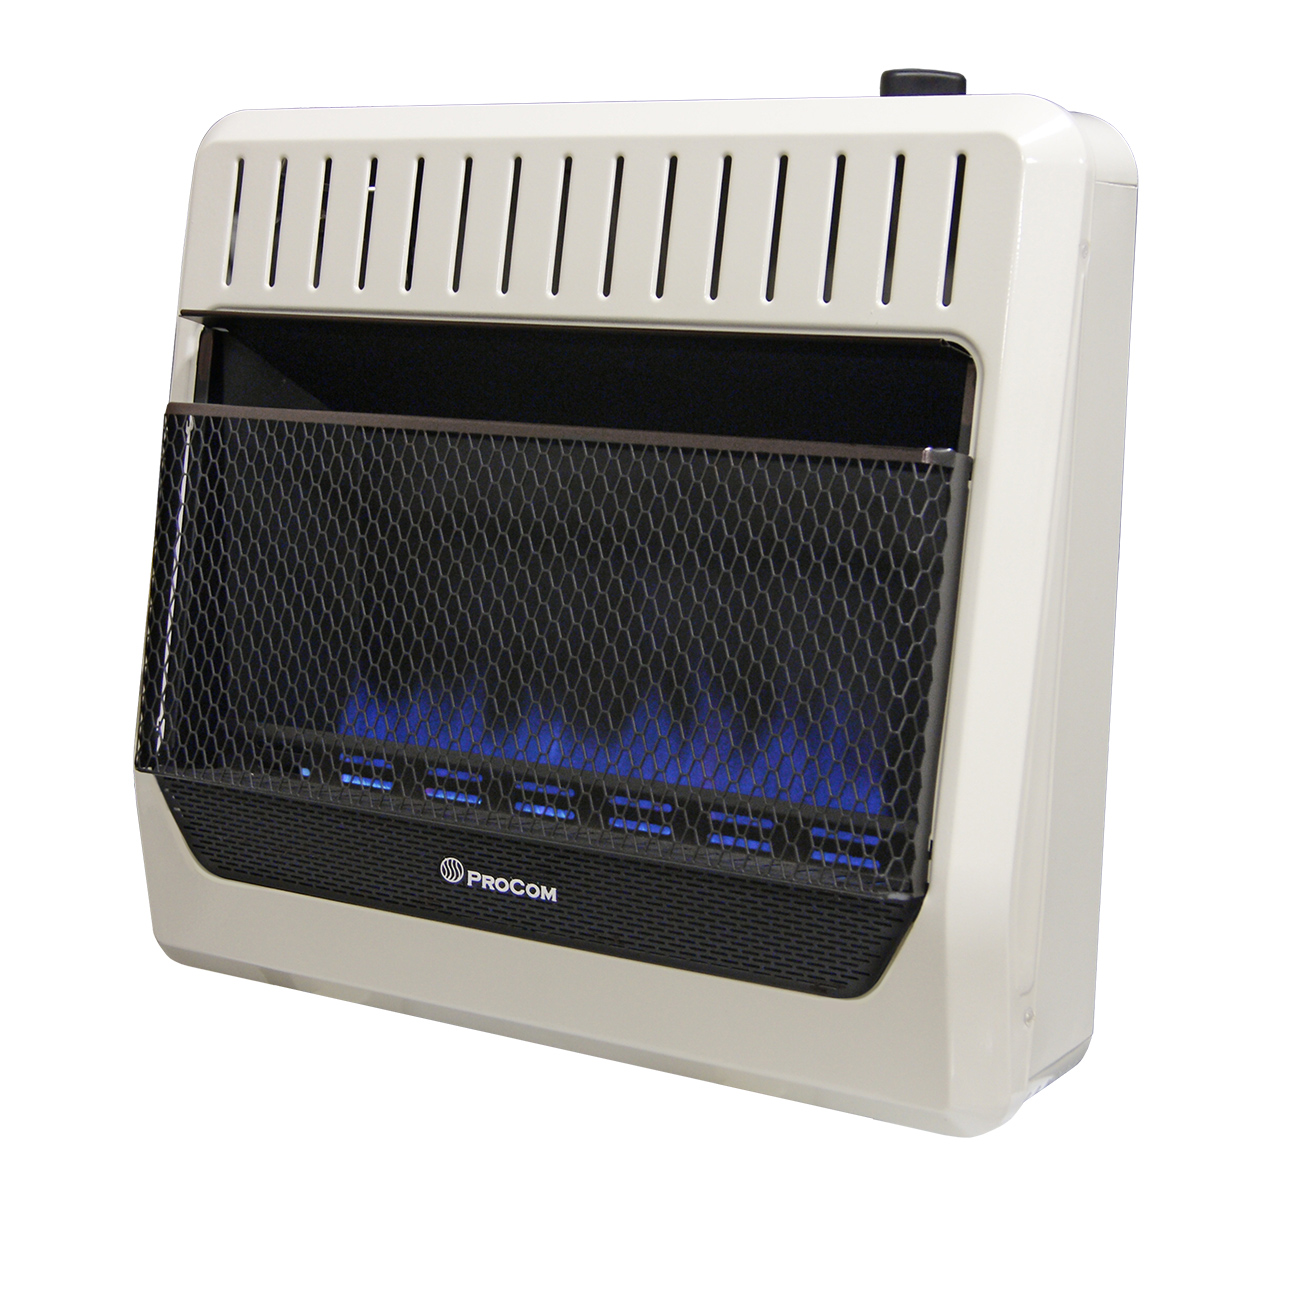 Ventless natural gas blue flame manual control wall heater for Natural gas heating options